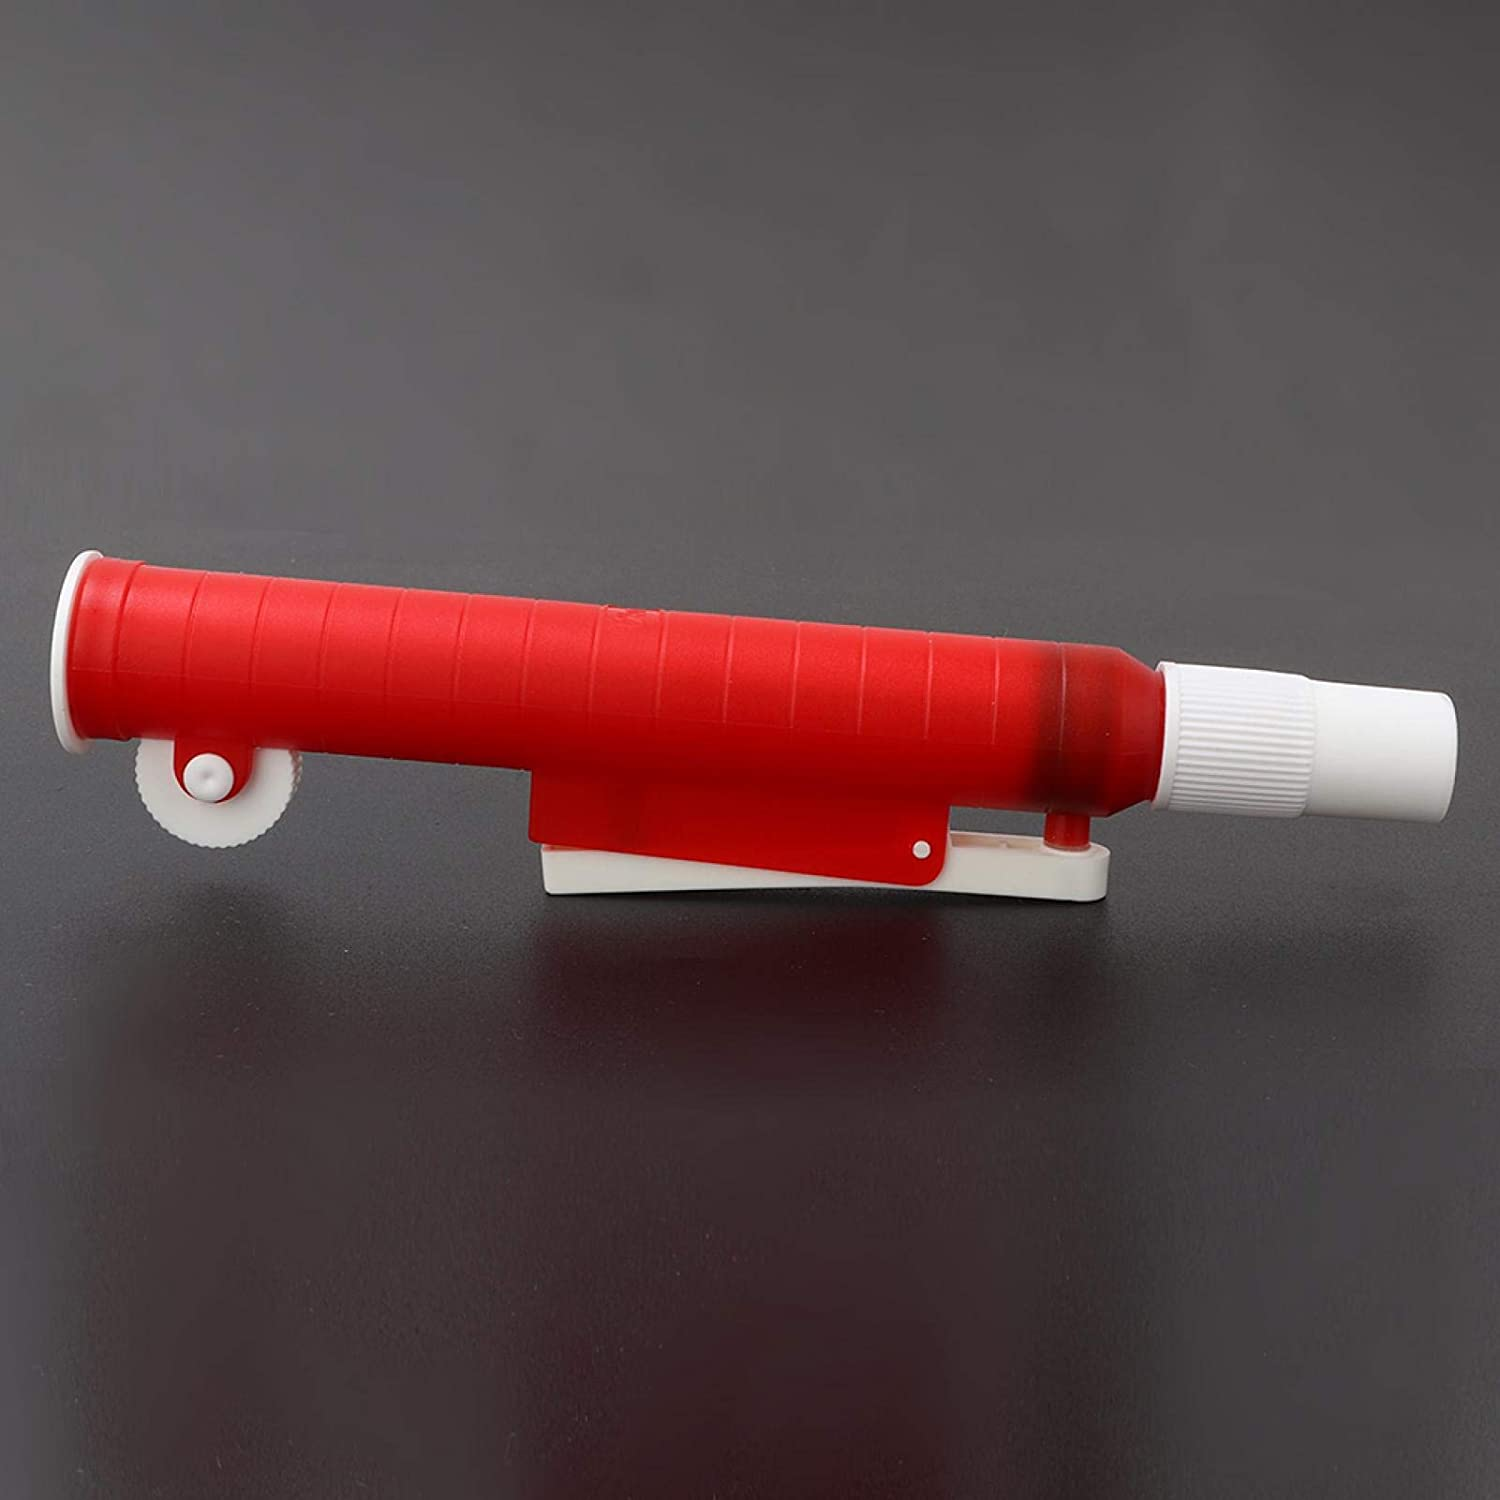 Easy Operation Pipette Max Wholesale 57% OFF Pump Red Filler Plasti Disposable